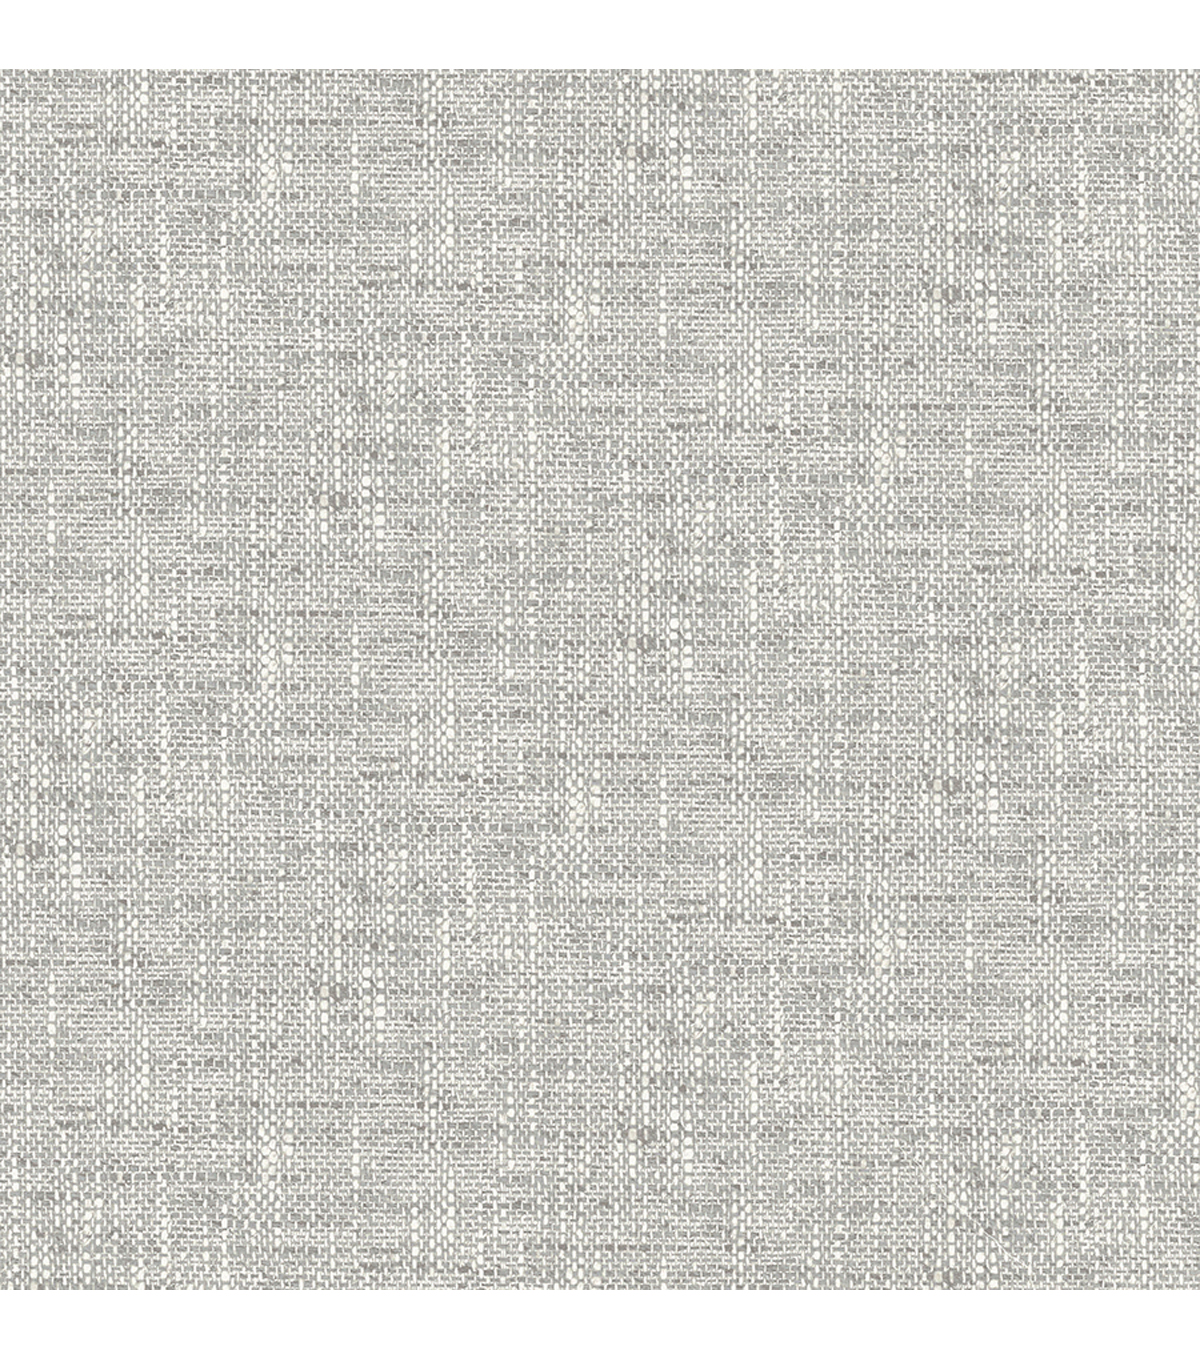 Wallpops NuWallpaper Peel & Stick Wallpaper-Gray Poplin Texture